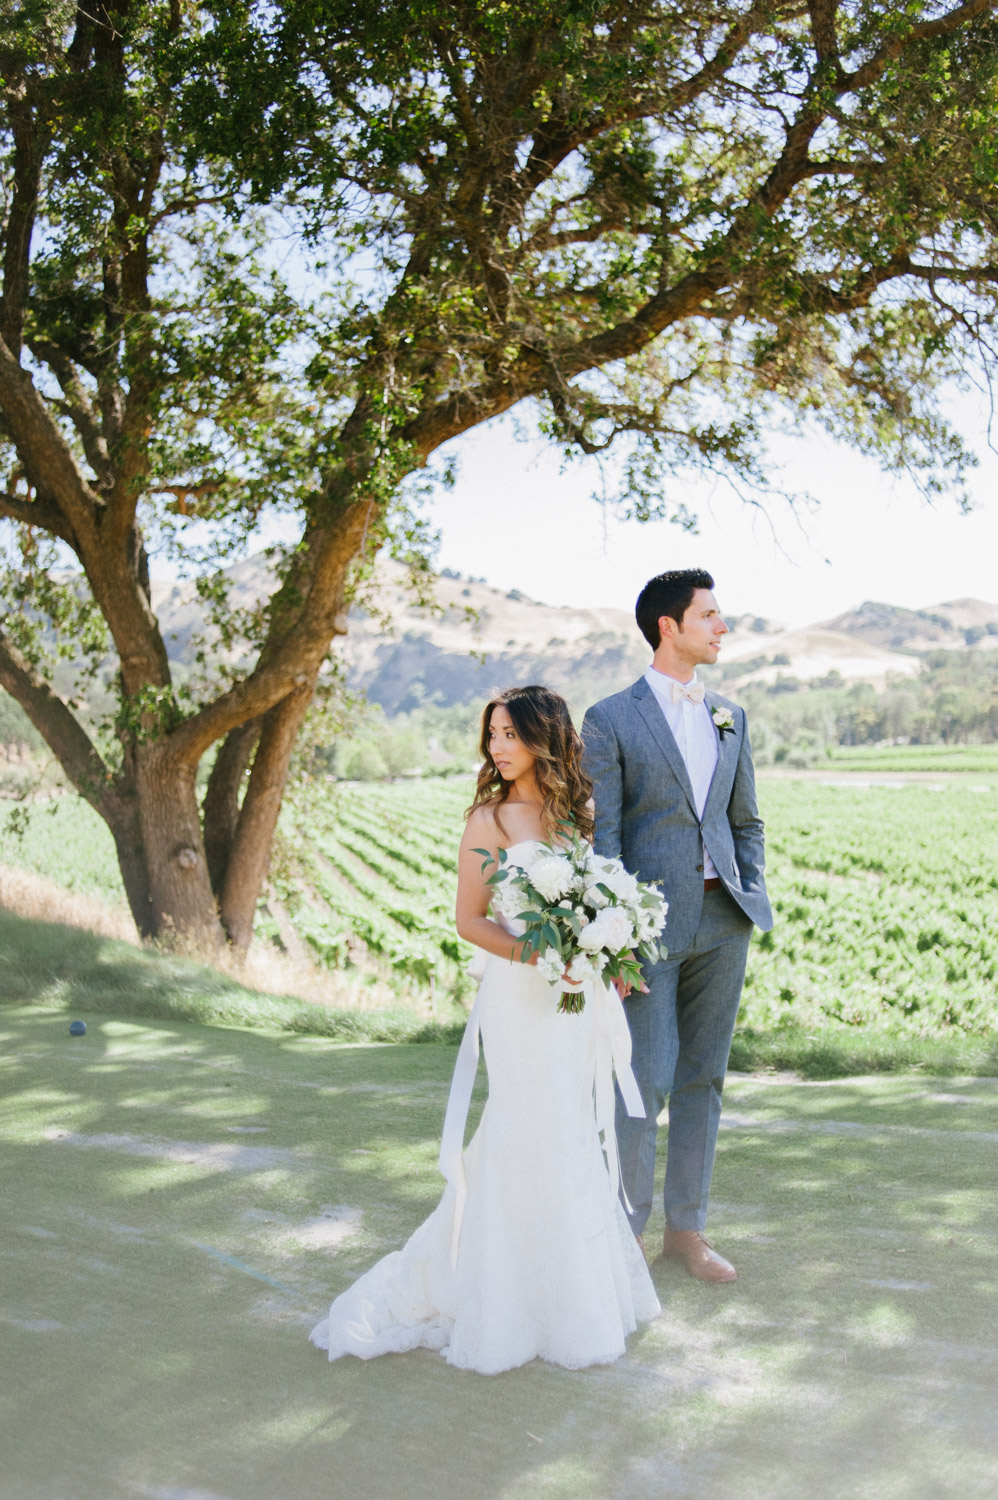 Crystalin & Mike - Sonoma, CAVenue: Wente VineyardsPlanning: Engaged & InspiredFloral: Huckleberry KarenFeatured: Style Me Pretty